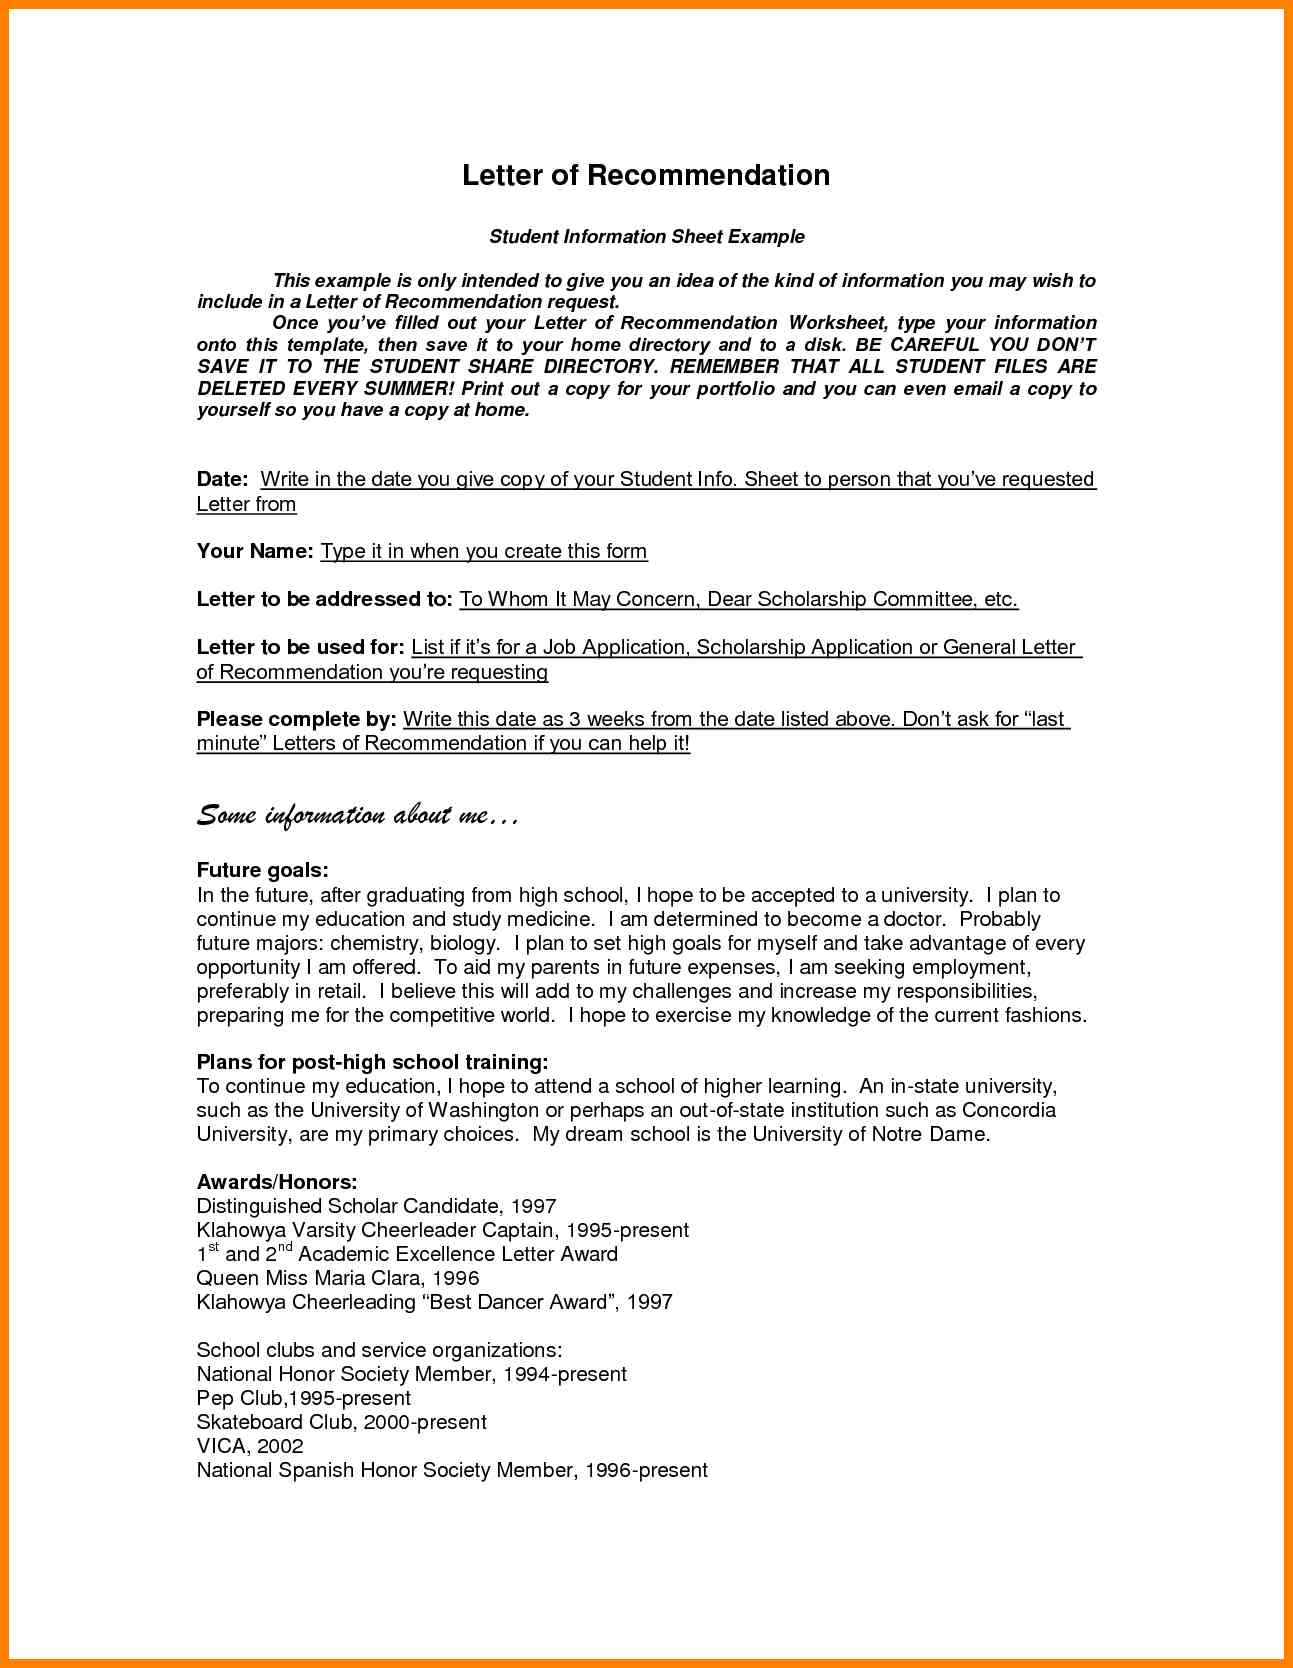 Letter Of Recommendation Template for Employee - Inspirational Letter Re Mendation Template for Employee